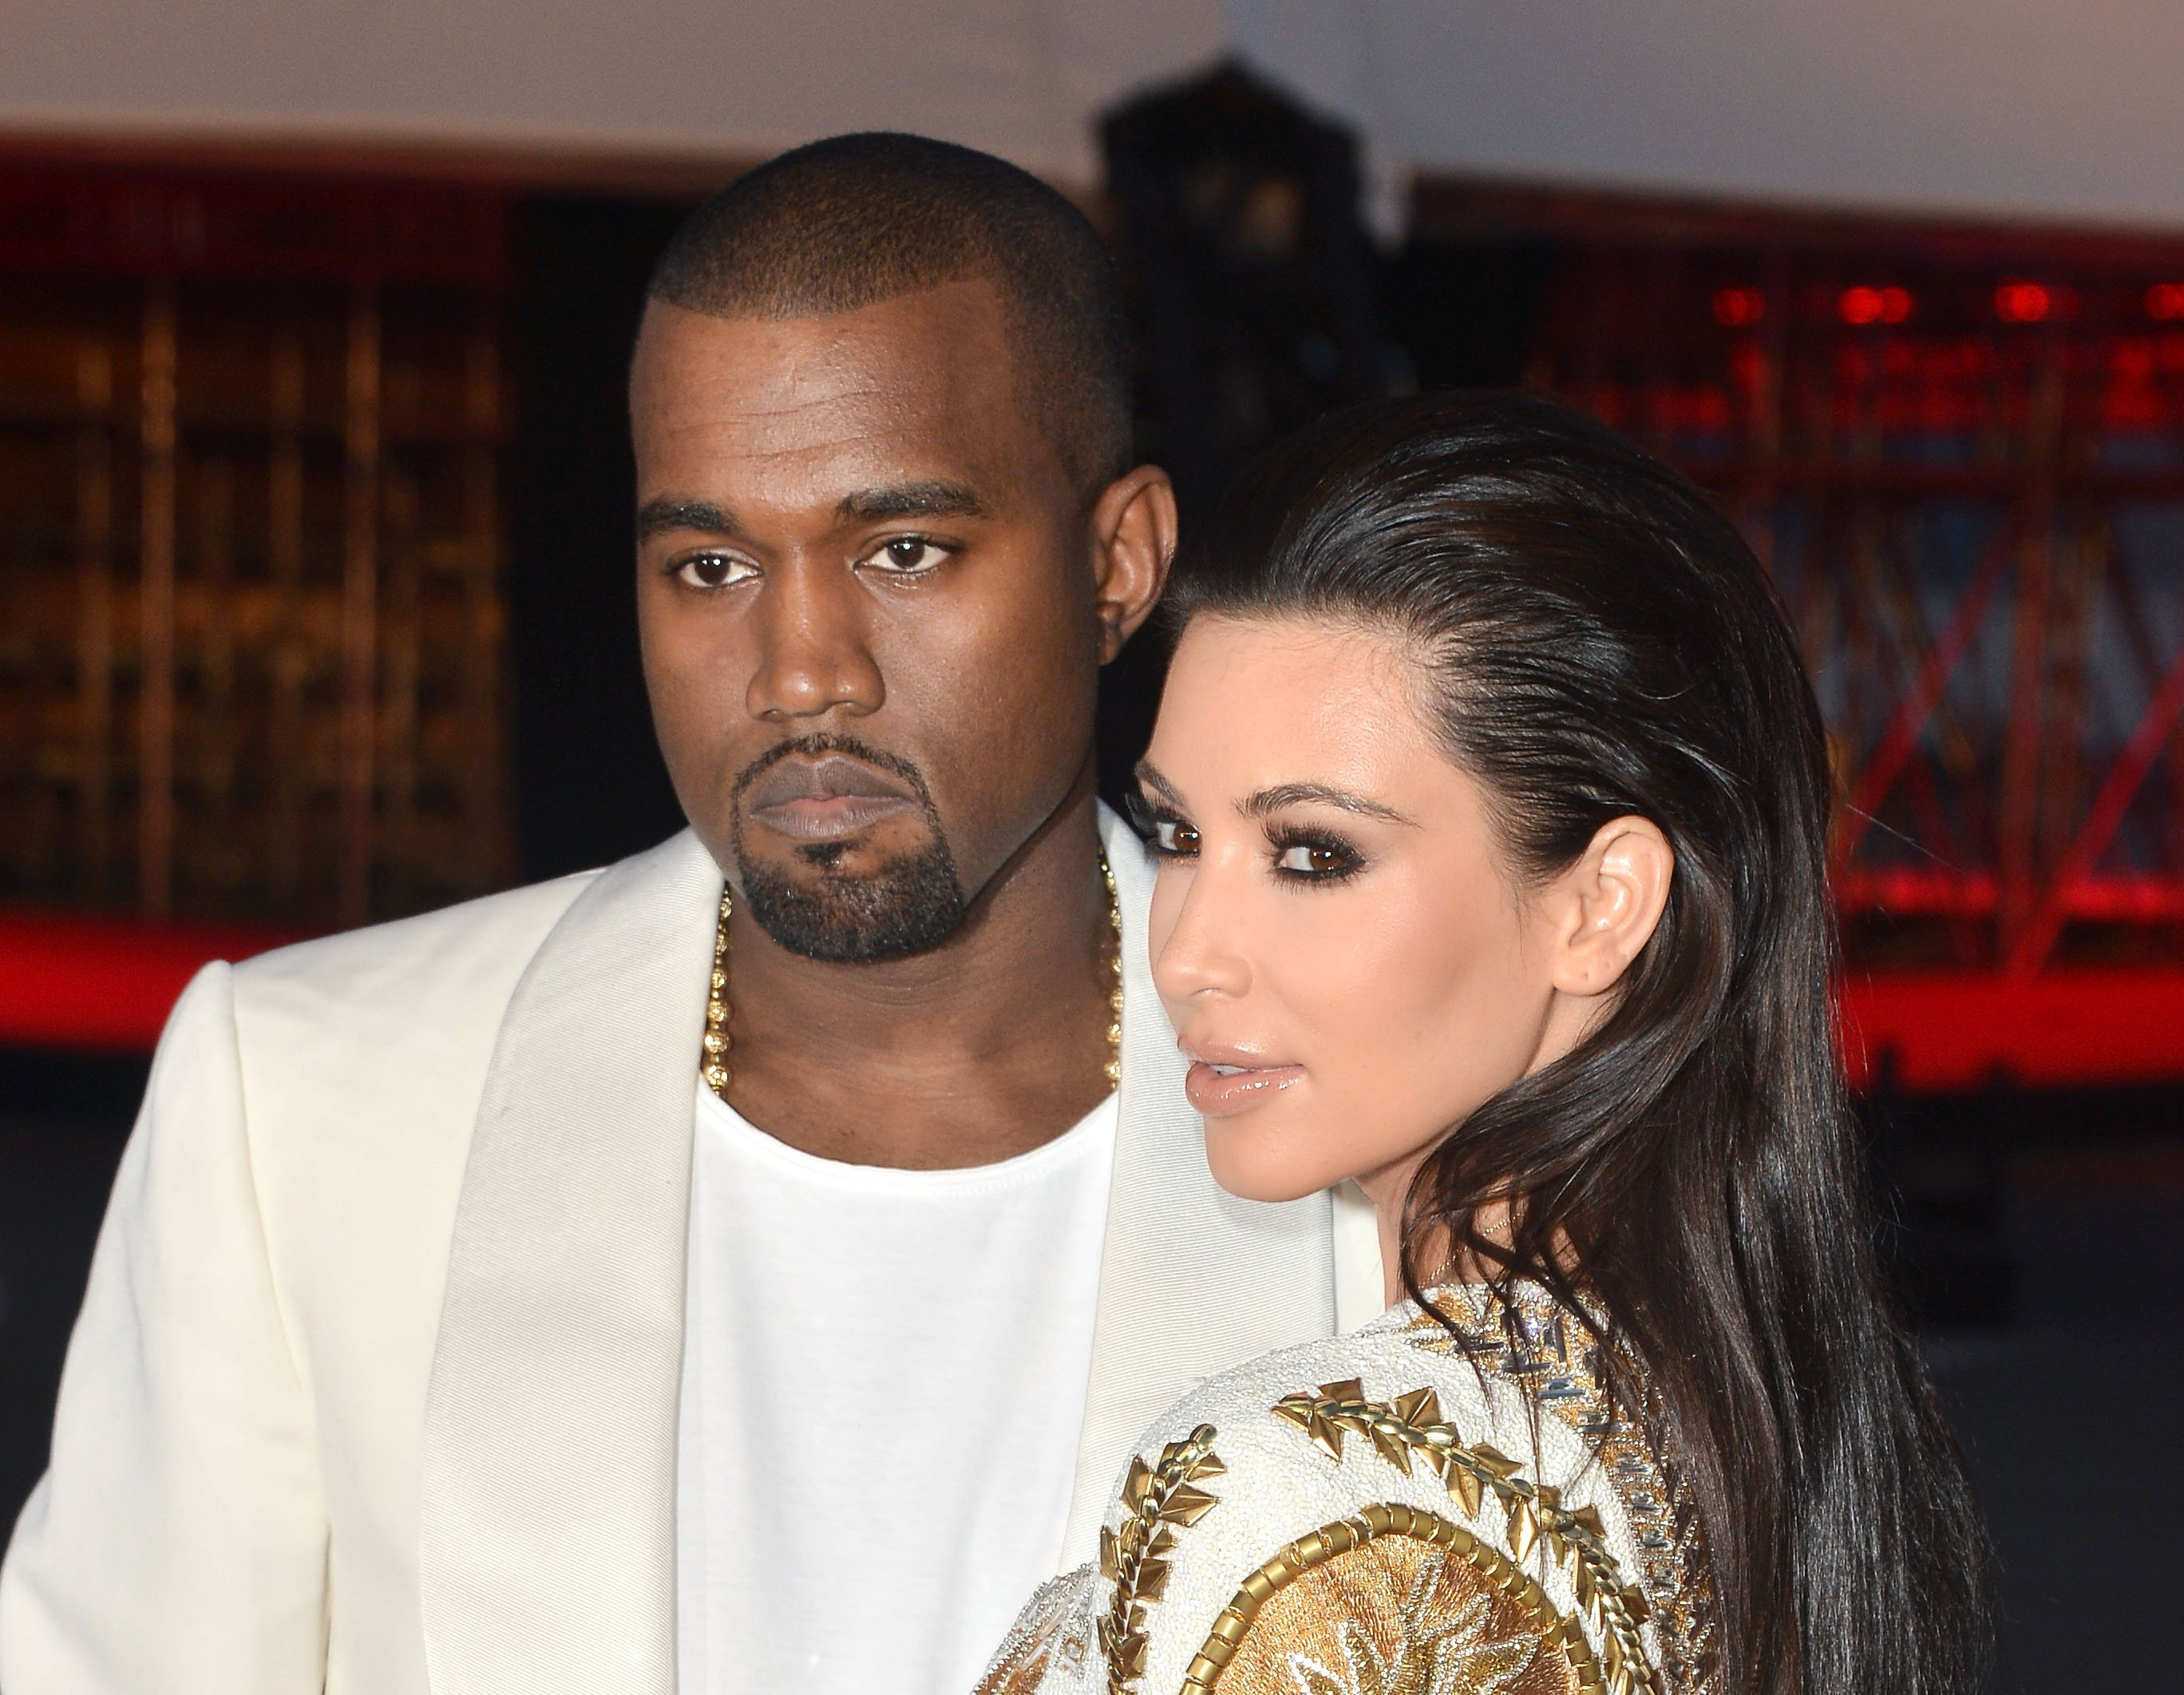 """Kanye West and Kim Kardashian attend the """"Cruel Summer"""" Premiere during the 65th Annual Cannes Film Festival at Palm Beach on May 23, 2012 